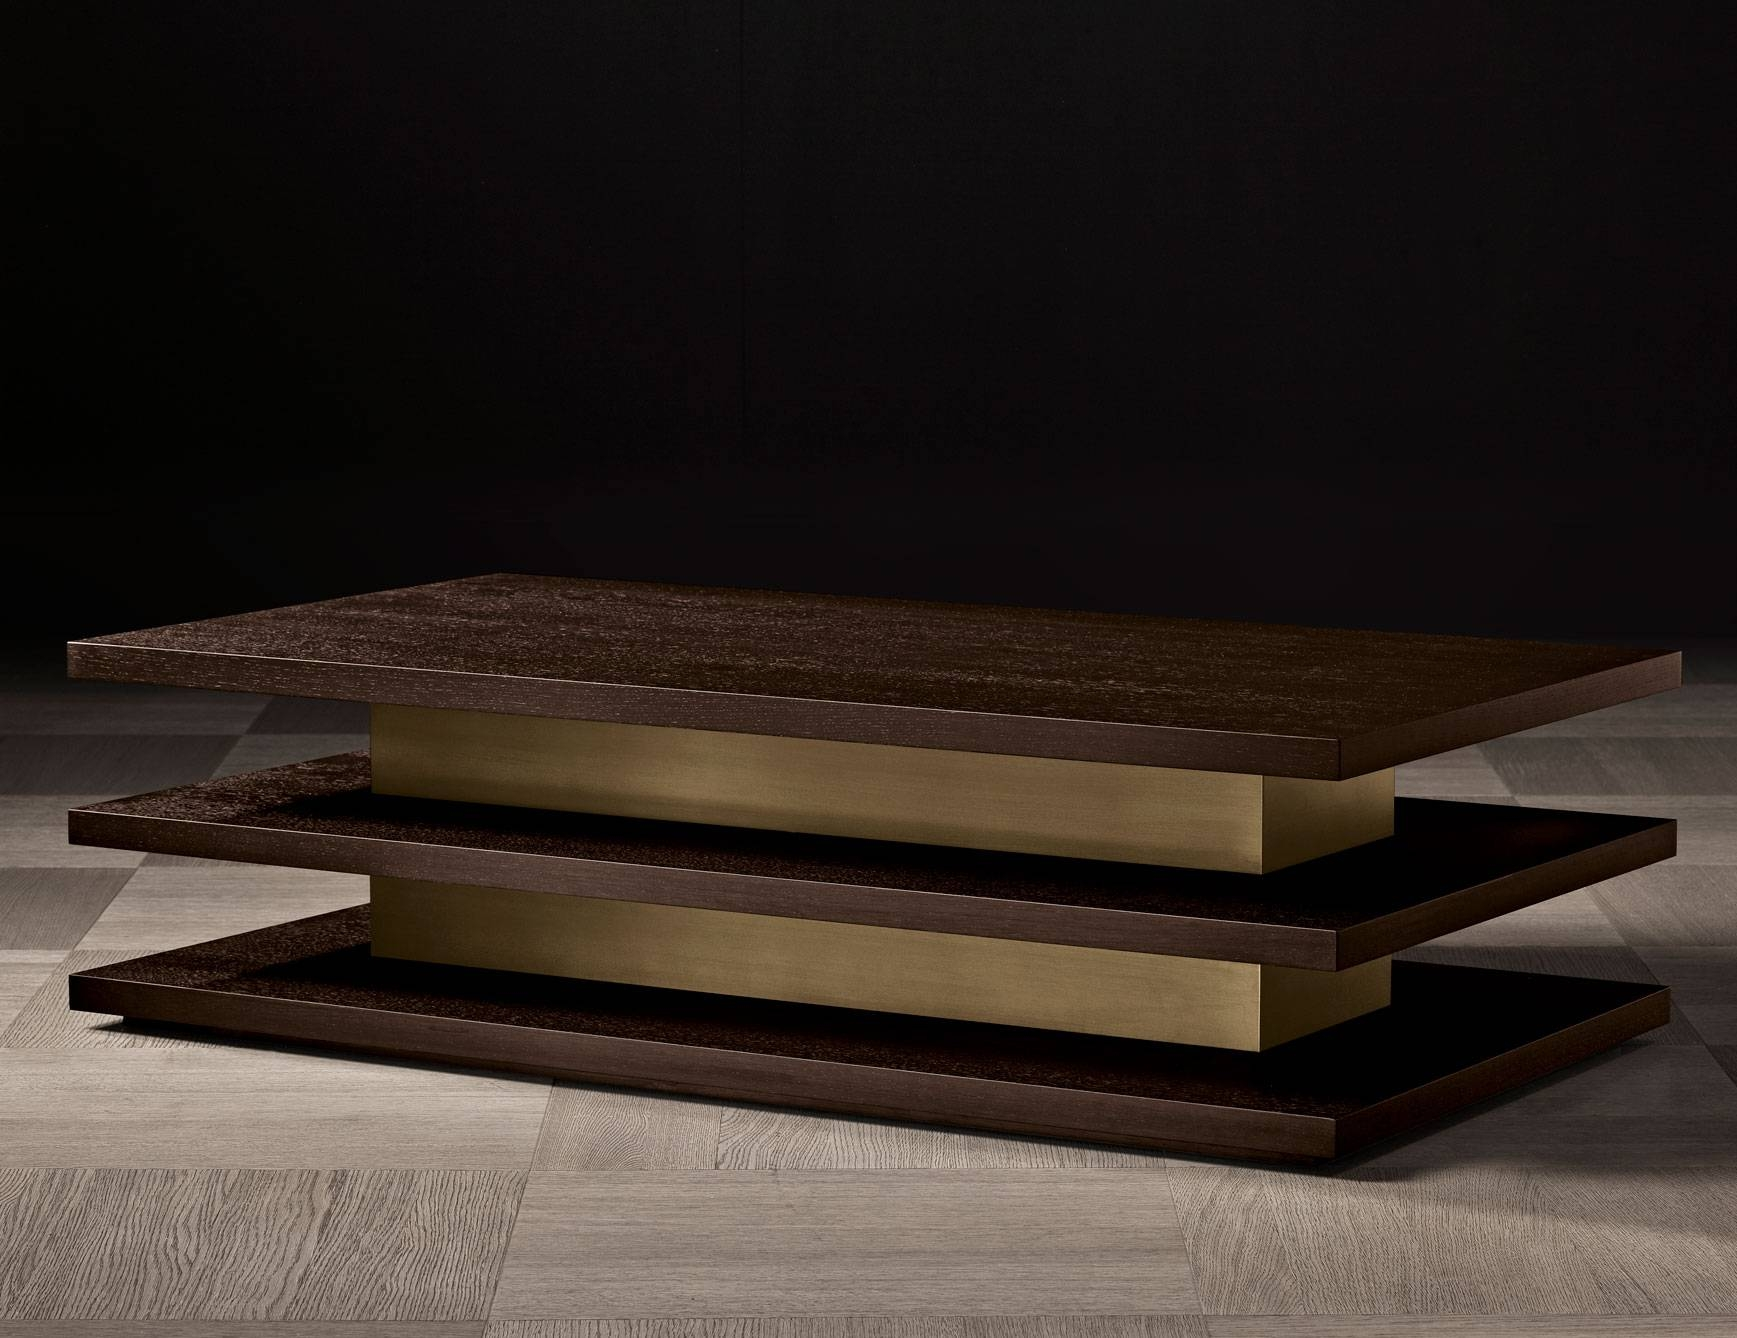 Designer Italian Luxury High End Coffee Tables: Nella Vetrina with regard to Italian Coffee Tables (Image 3 of 15)